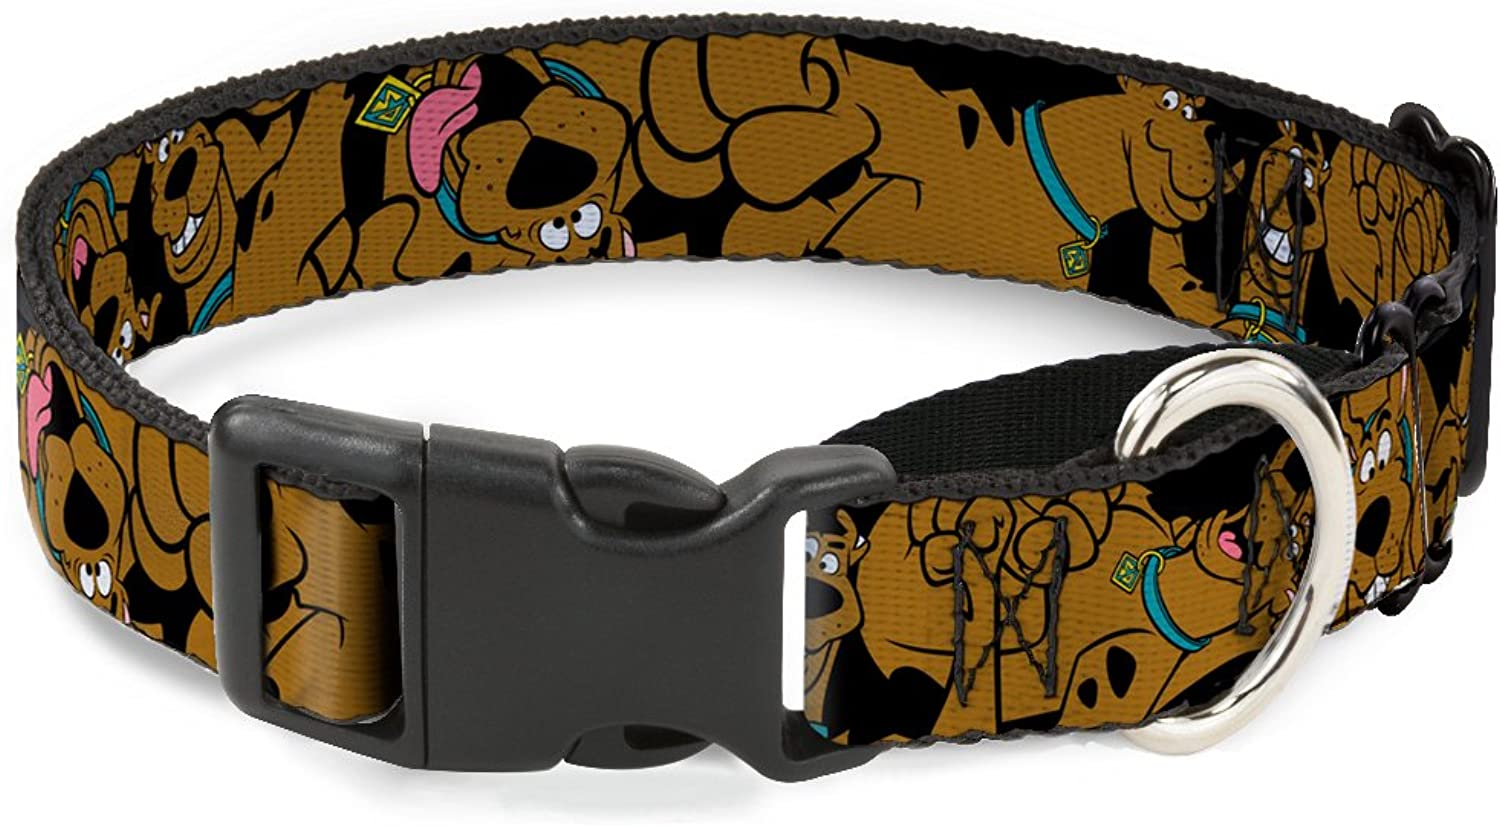 BuckleDown Scooby Doo Stacked Martingale Dog Collar, Black Green, 1.5  WideFits 1832  NeckLarge